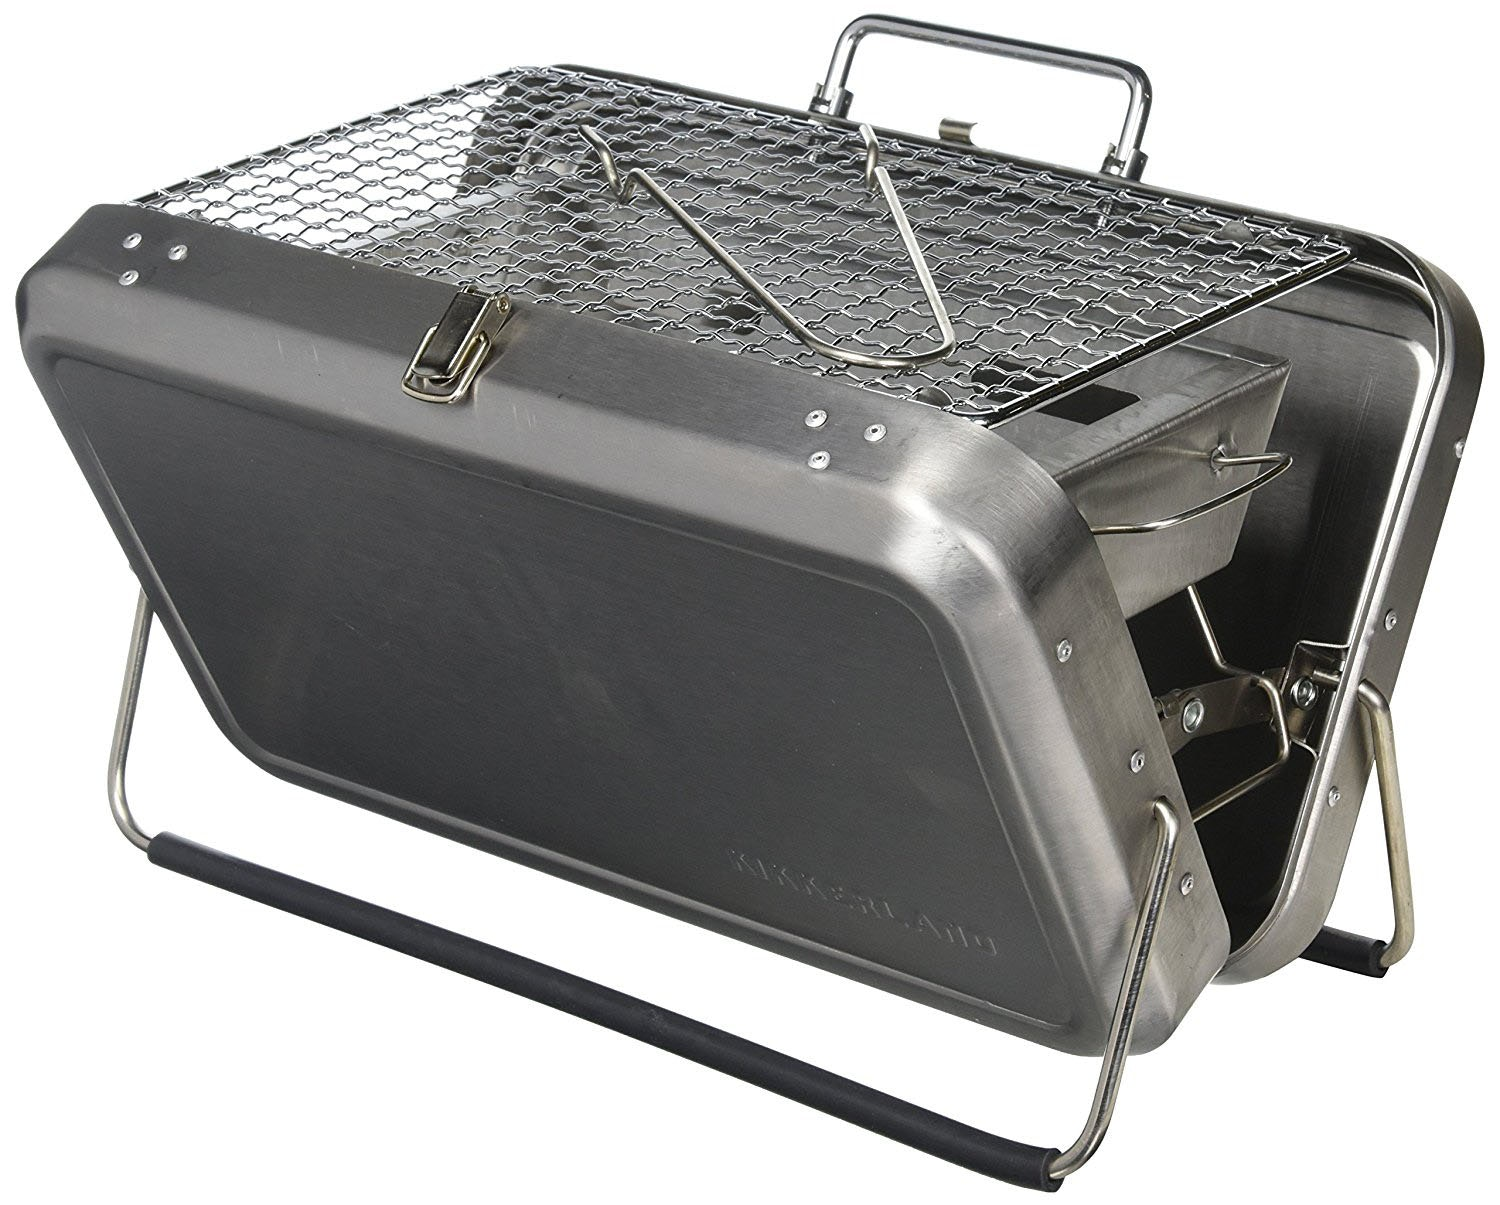 This suitcase that unfolds into a BBQ grill